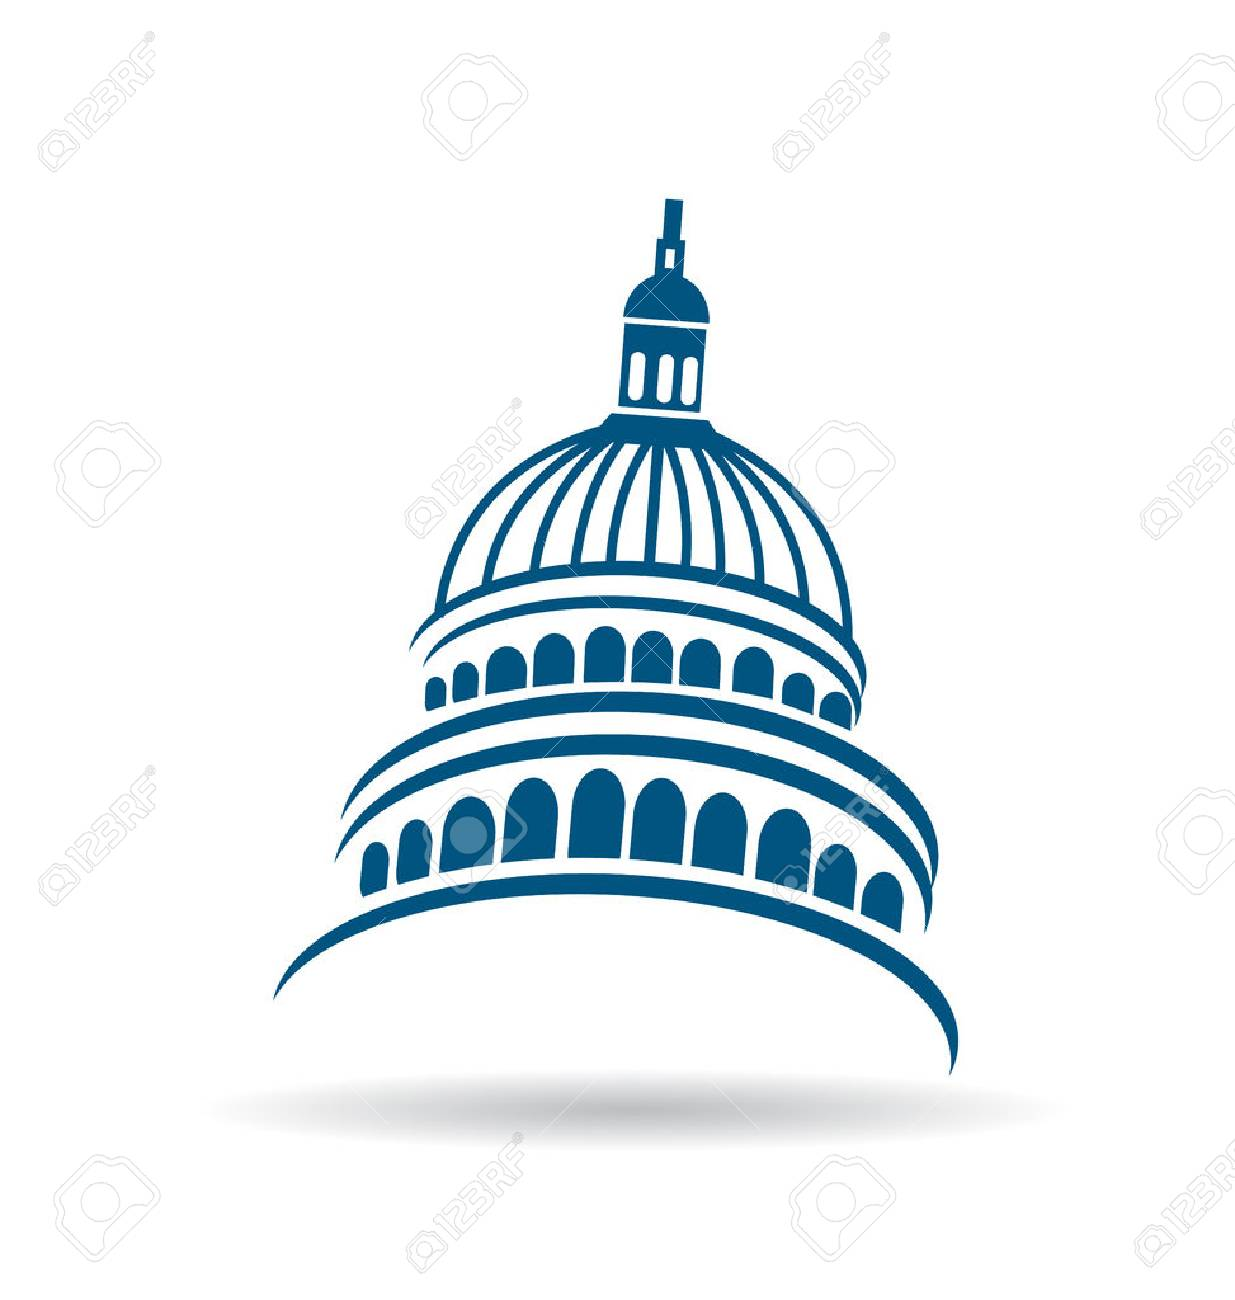 usa capitol building icon royalty free cliparts vectors and stock rh 123rf com capitol records building vector capitol building vector graphic